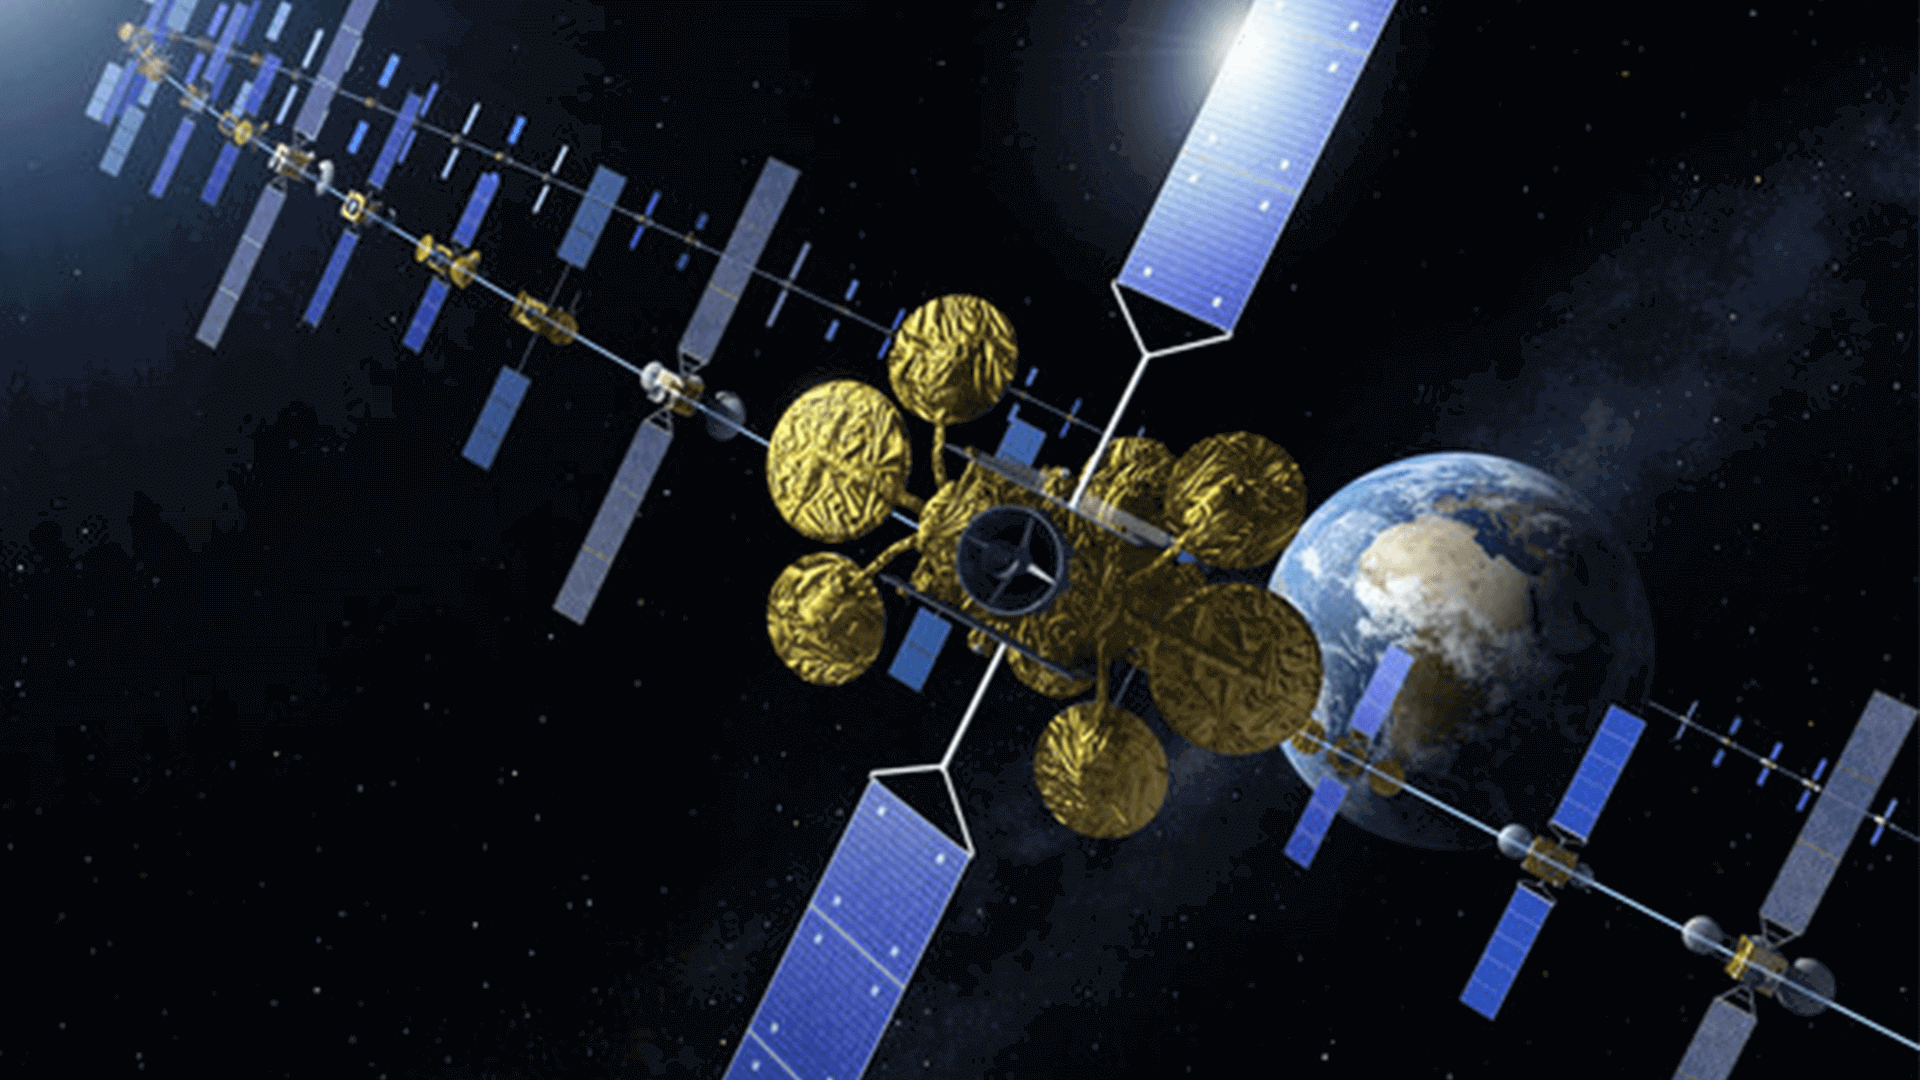 Metal 3D Printing Used to Produce Waveguides For Telecom Satellites | All3DP